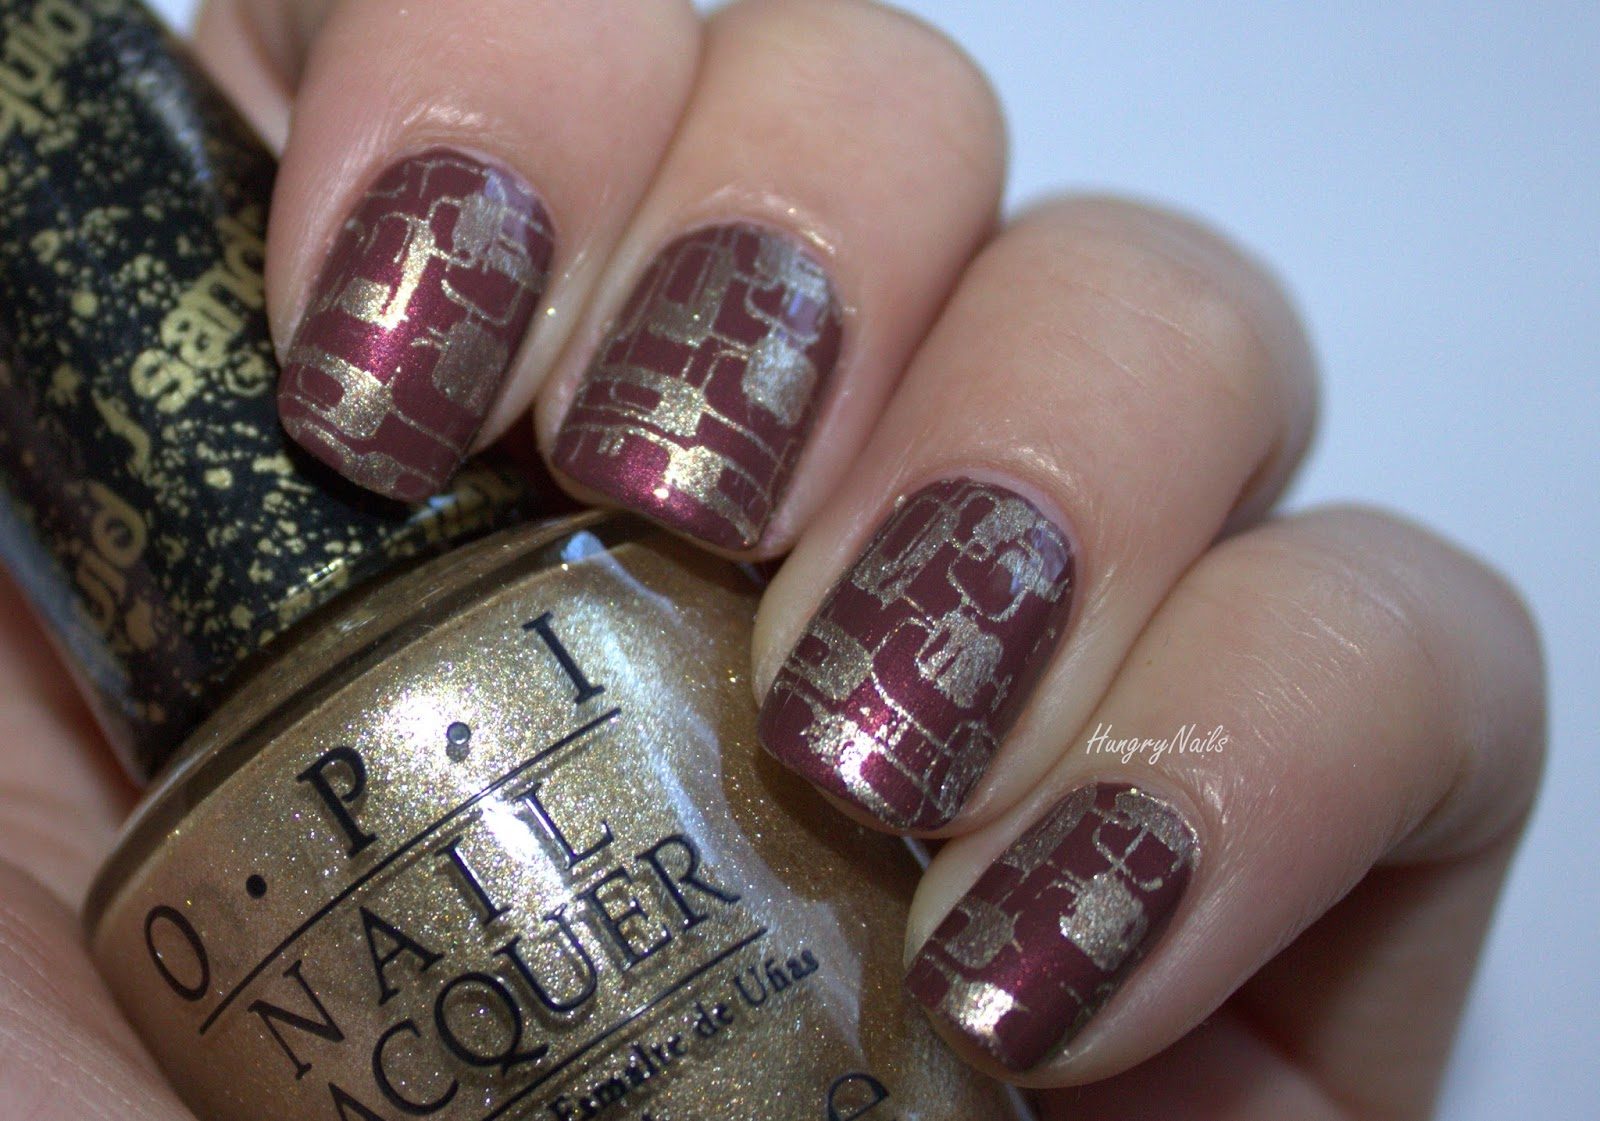 http://hungrynails.blogspot.de/2014/04/stamping-with-opi.html